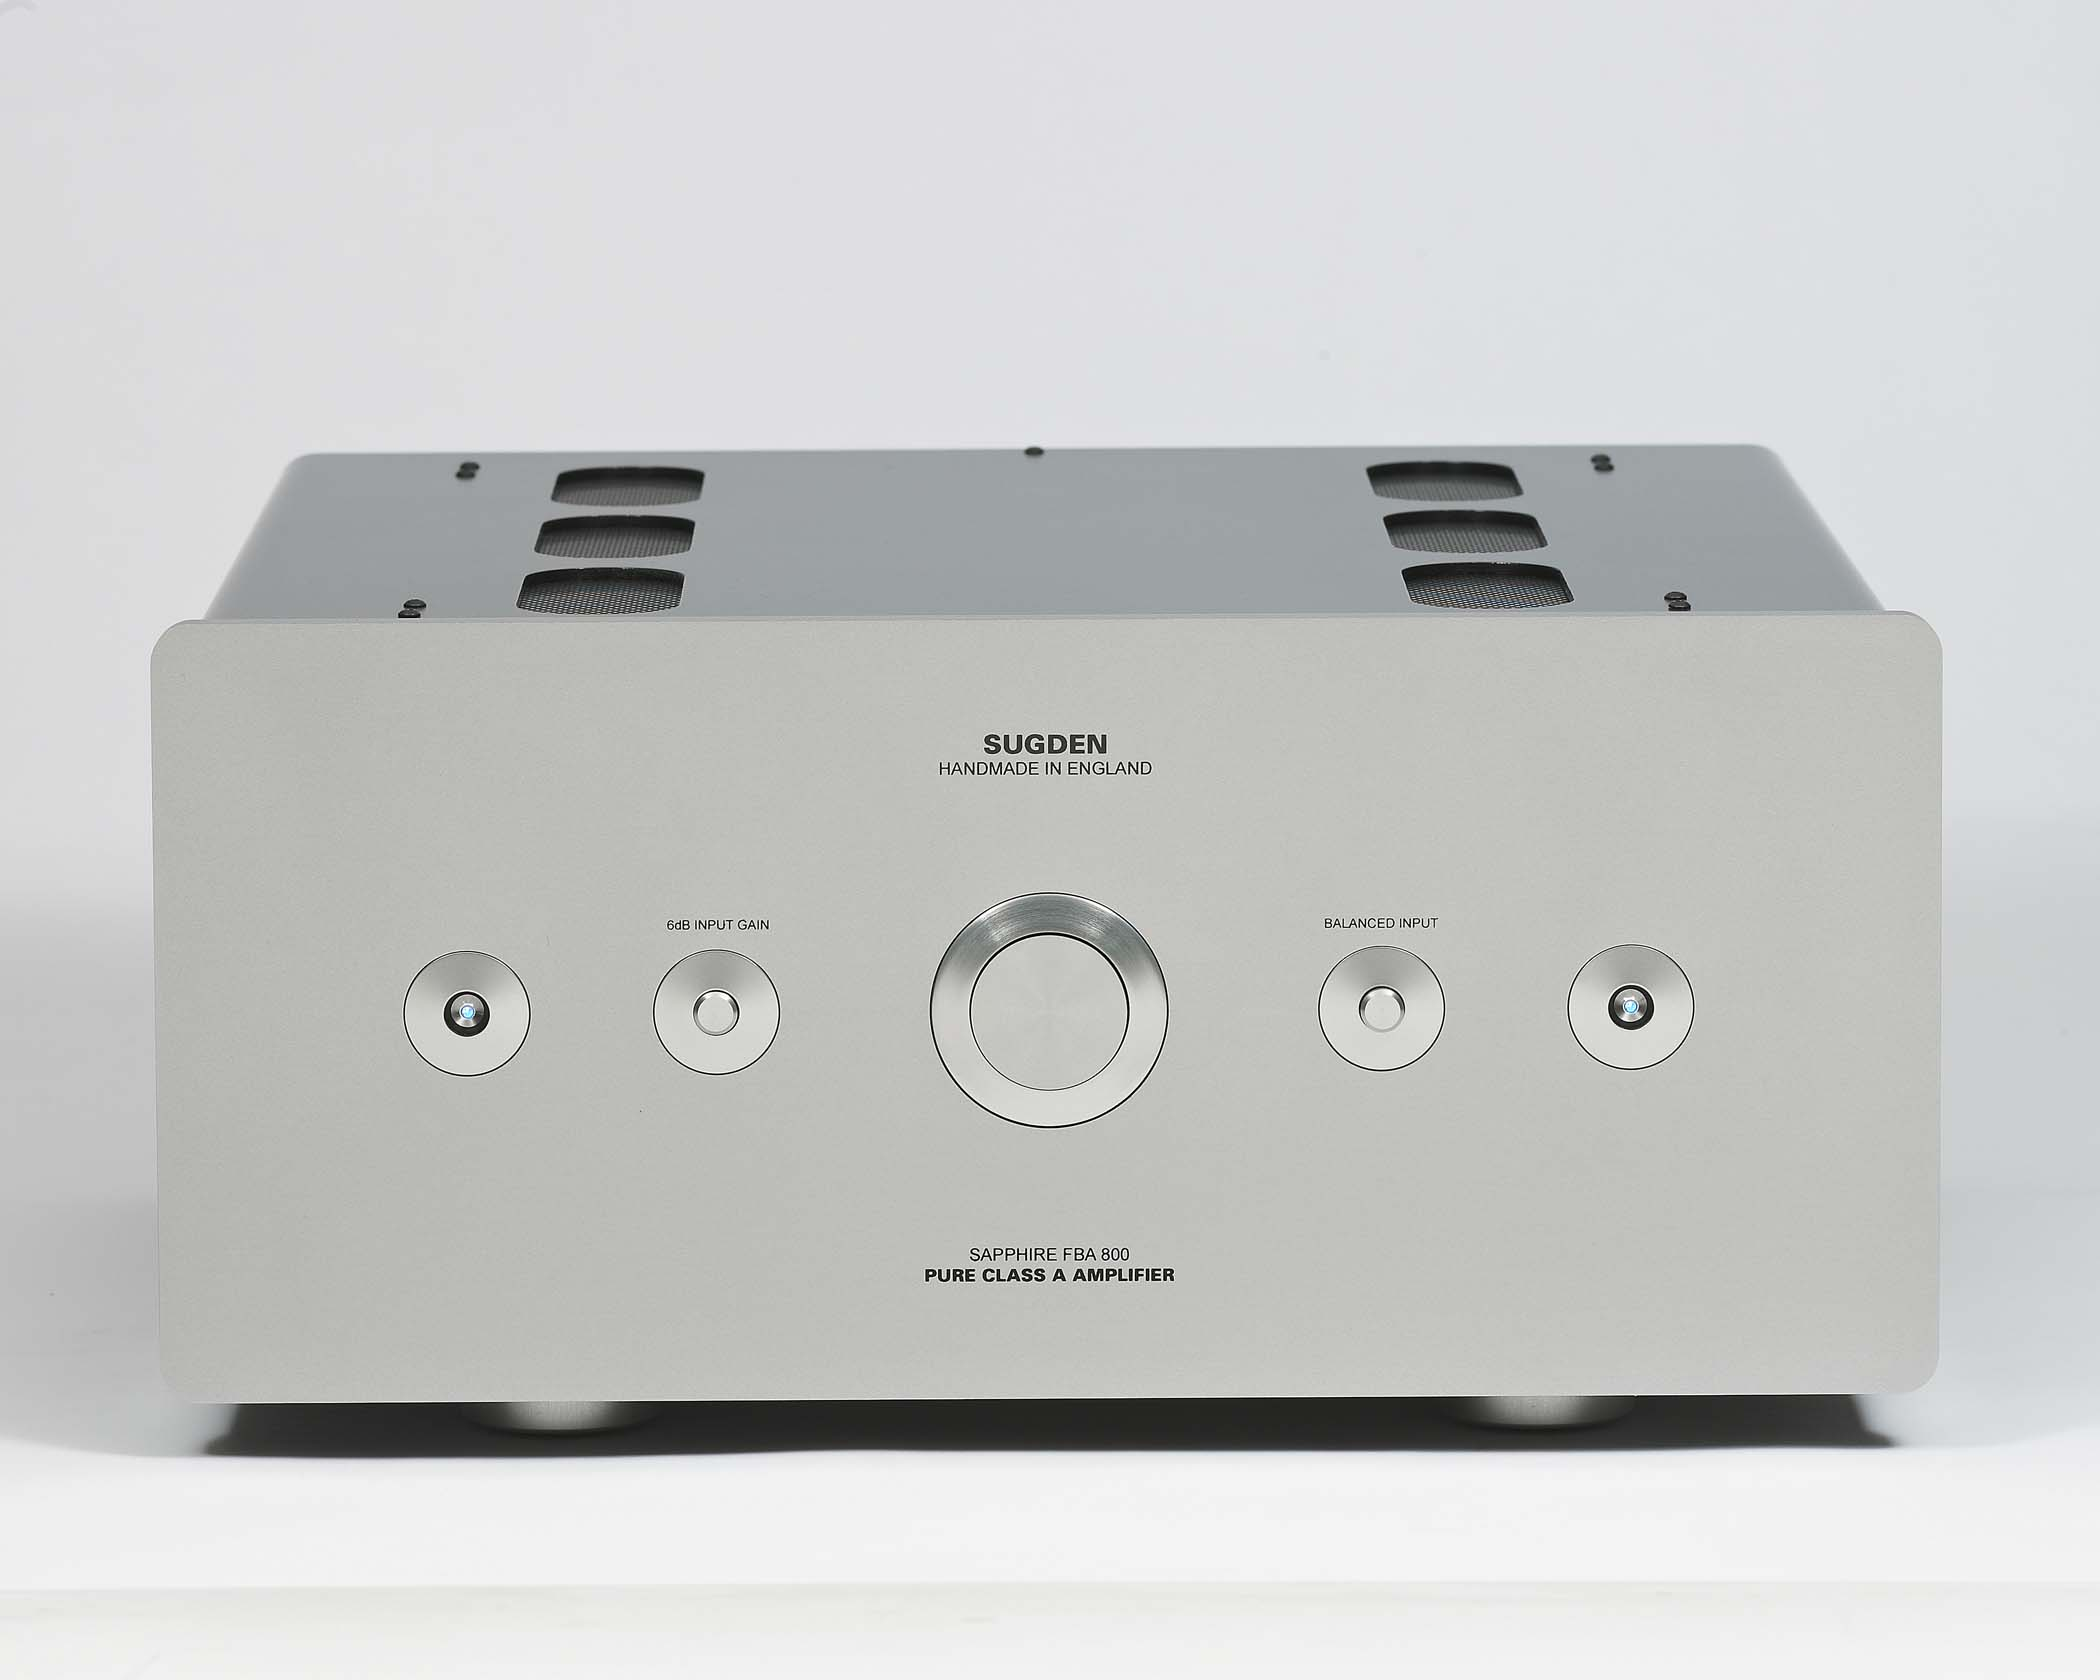 Sugden Audio Sapphire Fba 800 Floating Bridge Pure Class A Stereo Power Amplifiers Saphire 01 Amplifier